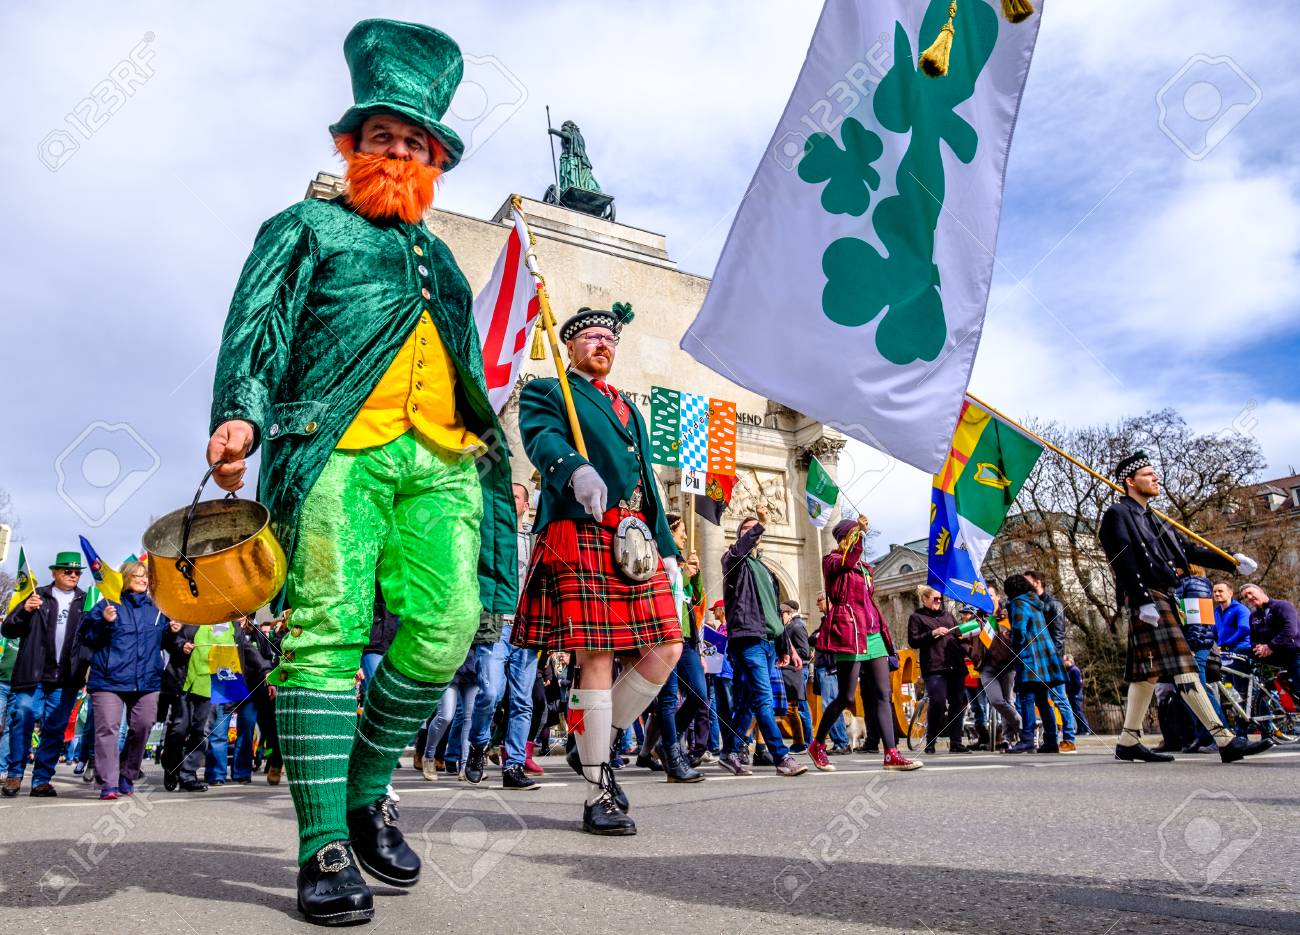 MUNICH - MARCH 11: People celebrating the annual national irish holiday St. Patricks day marching in the old town in munich, germany on March 11, 2018 - 107957900